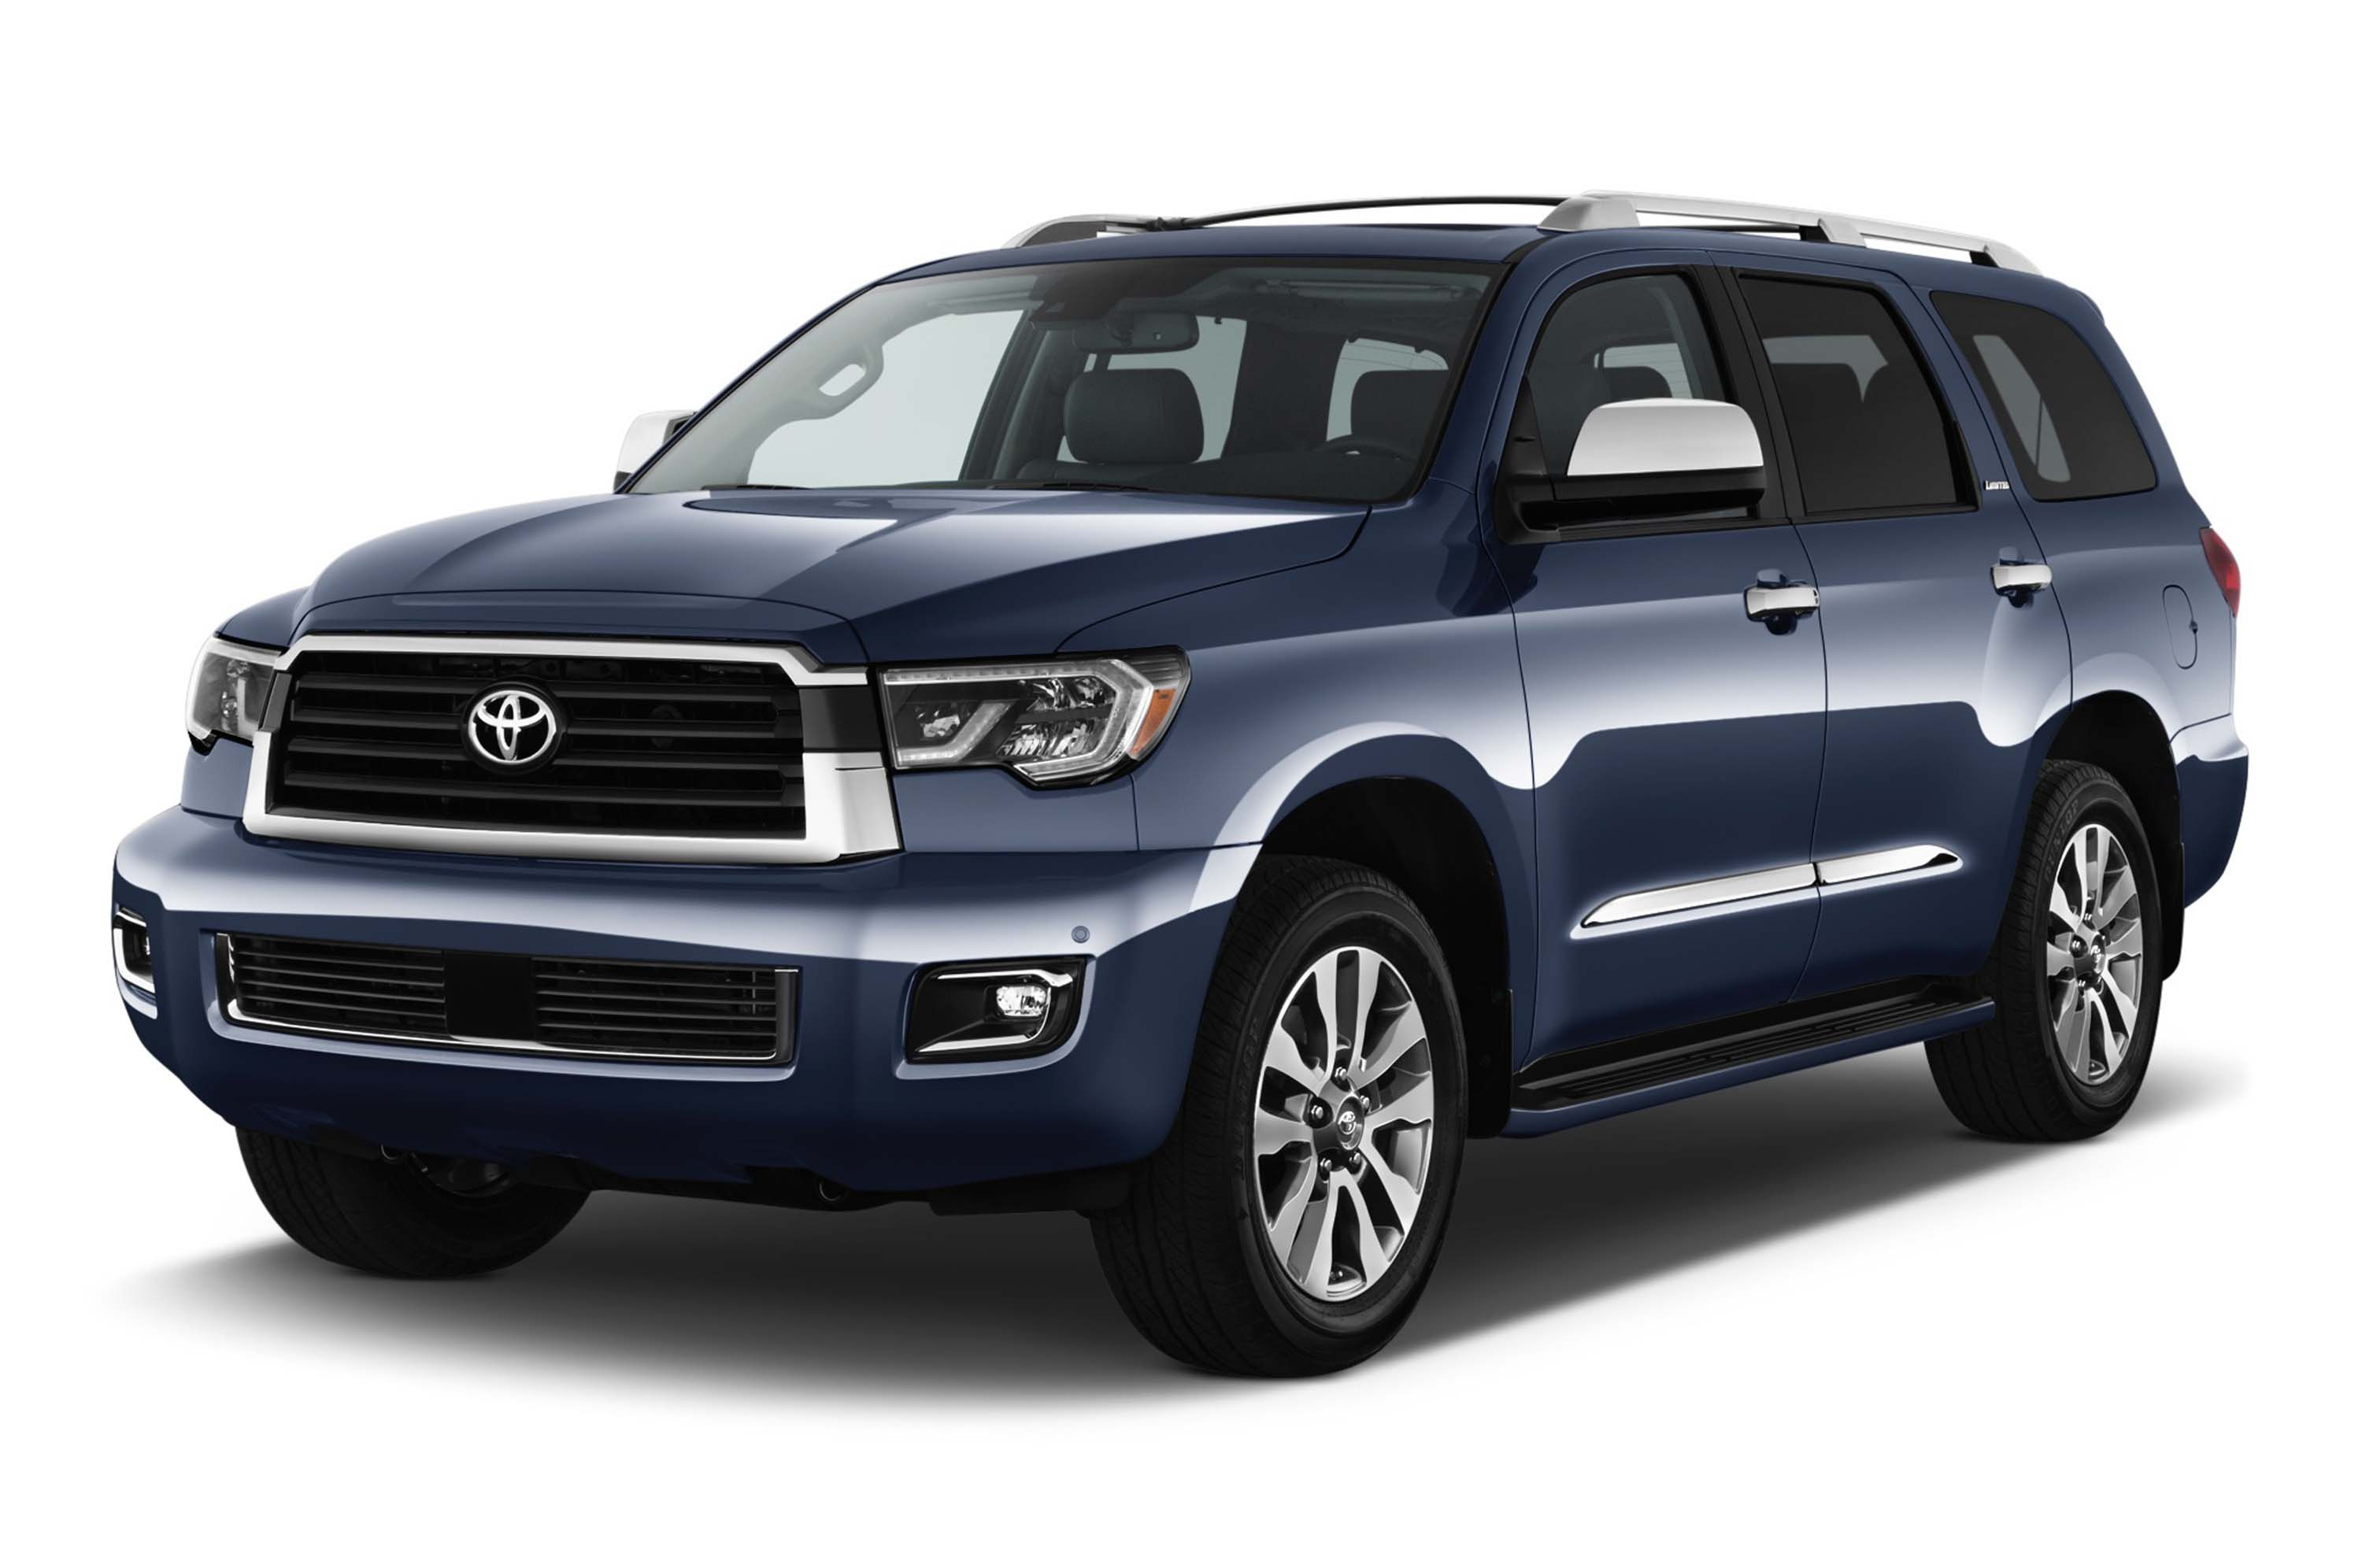 2019 Toyota Sequoia Review, Ratings, Specs, Prices, and ...